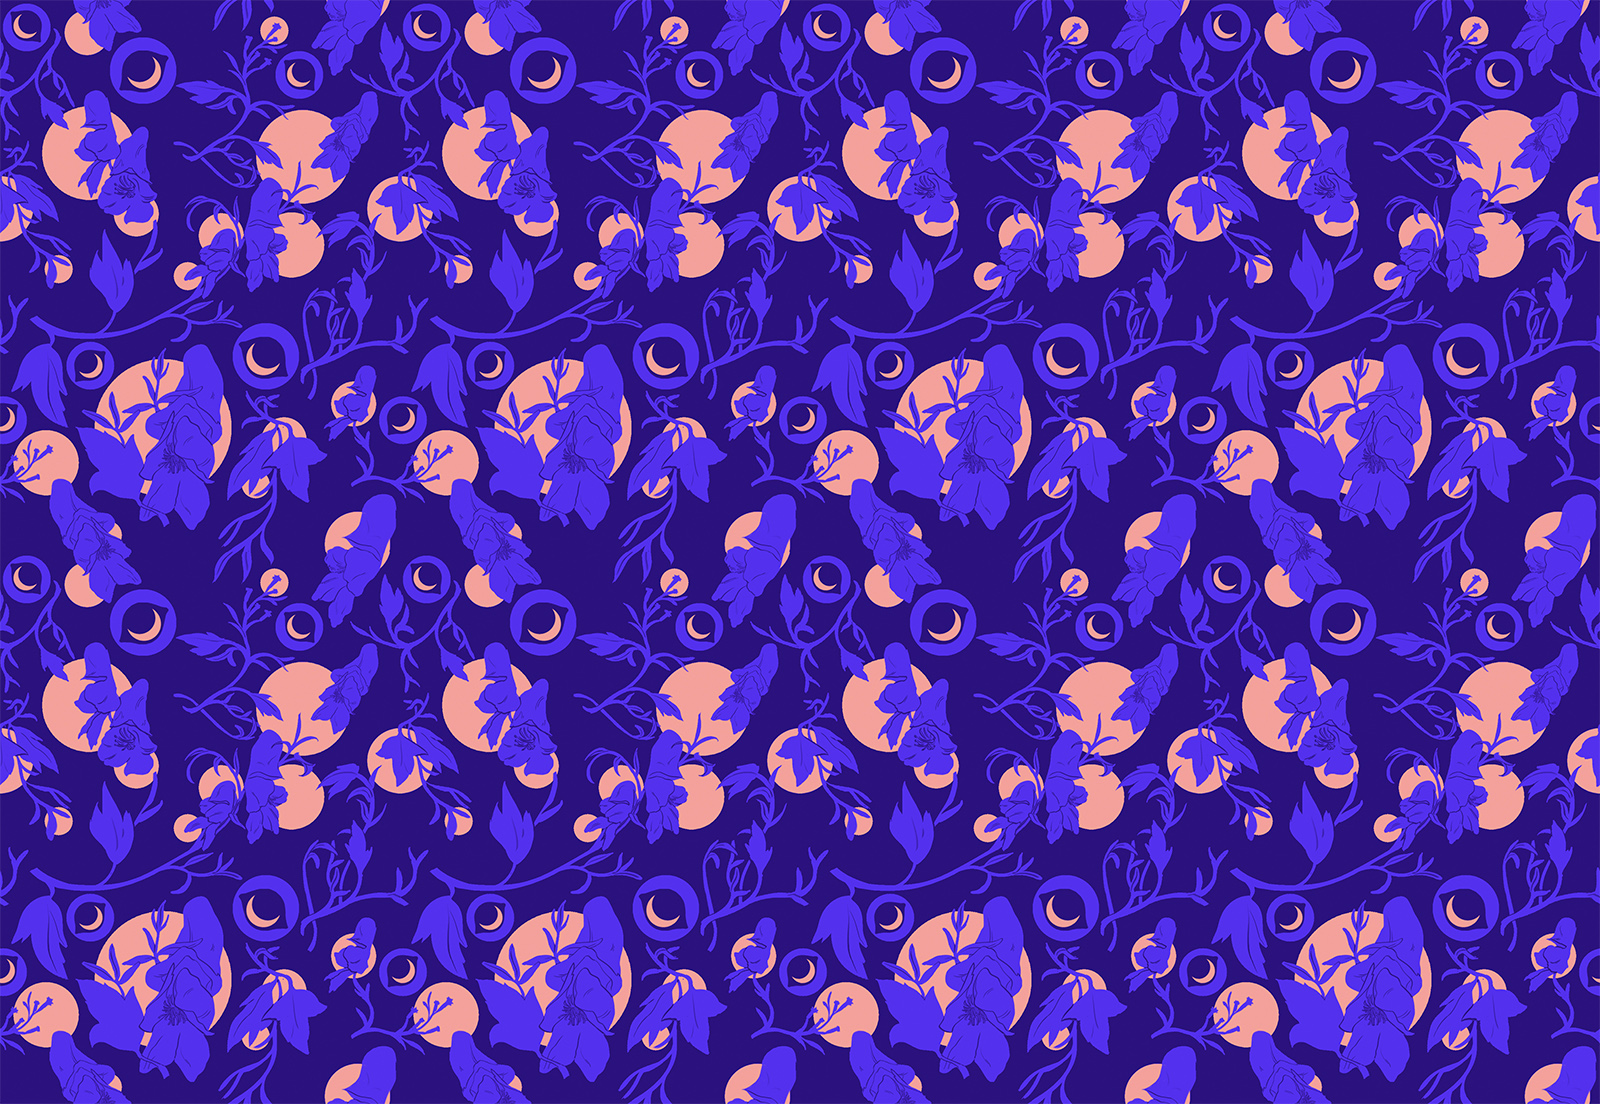 Werewolf card backing pattern. A repeat pattern composed of wolf eyes, moons, and wolfsbane flowers and leaves.